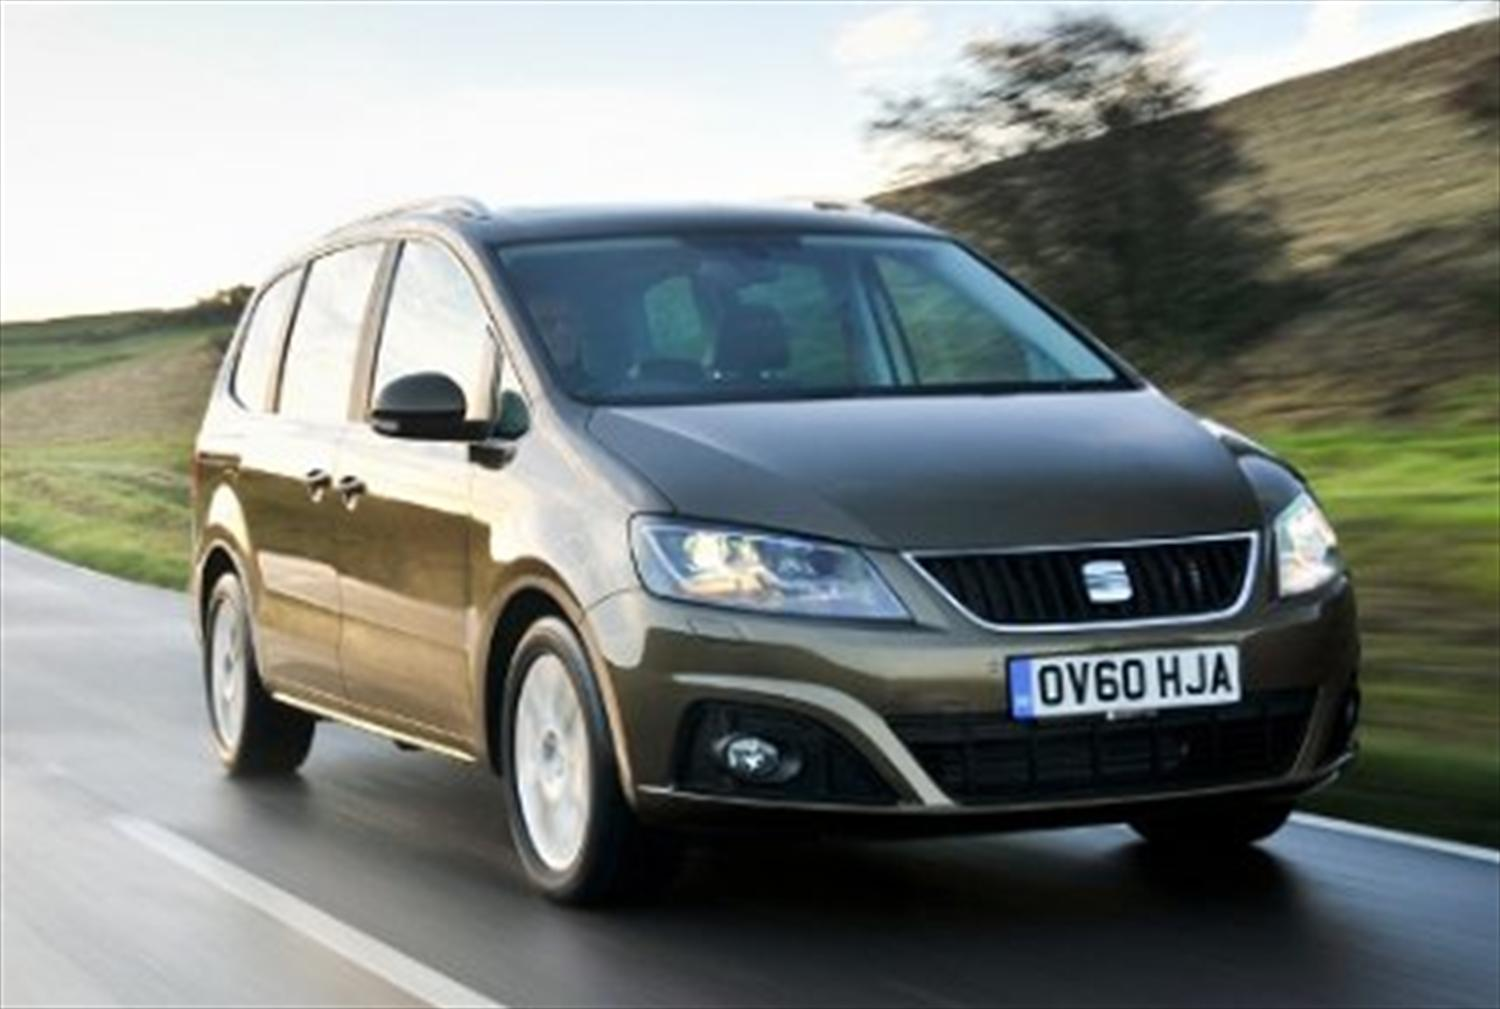 The cheapest seven-seat cars in the UK